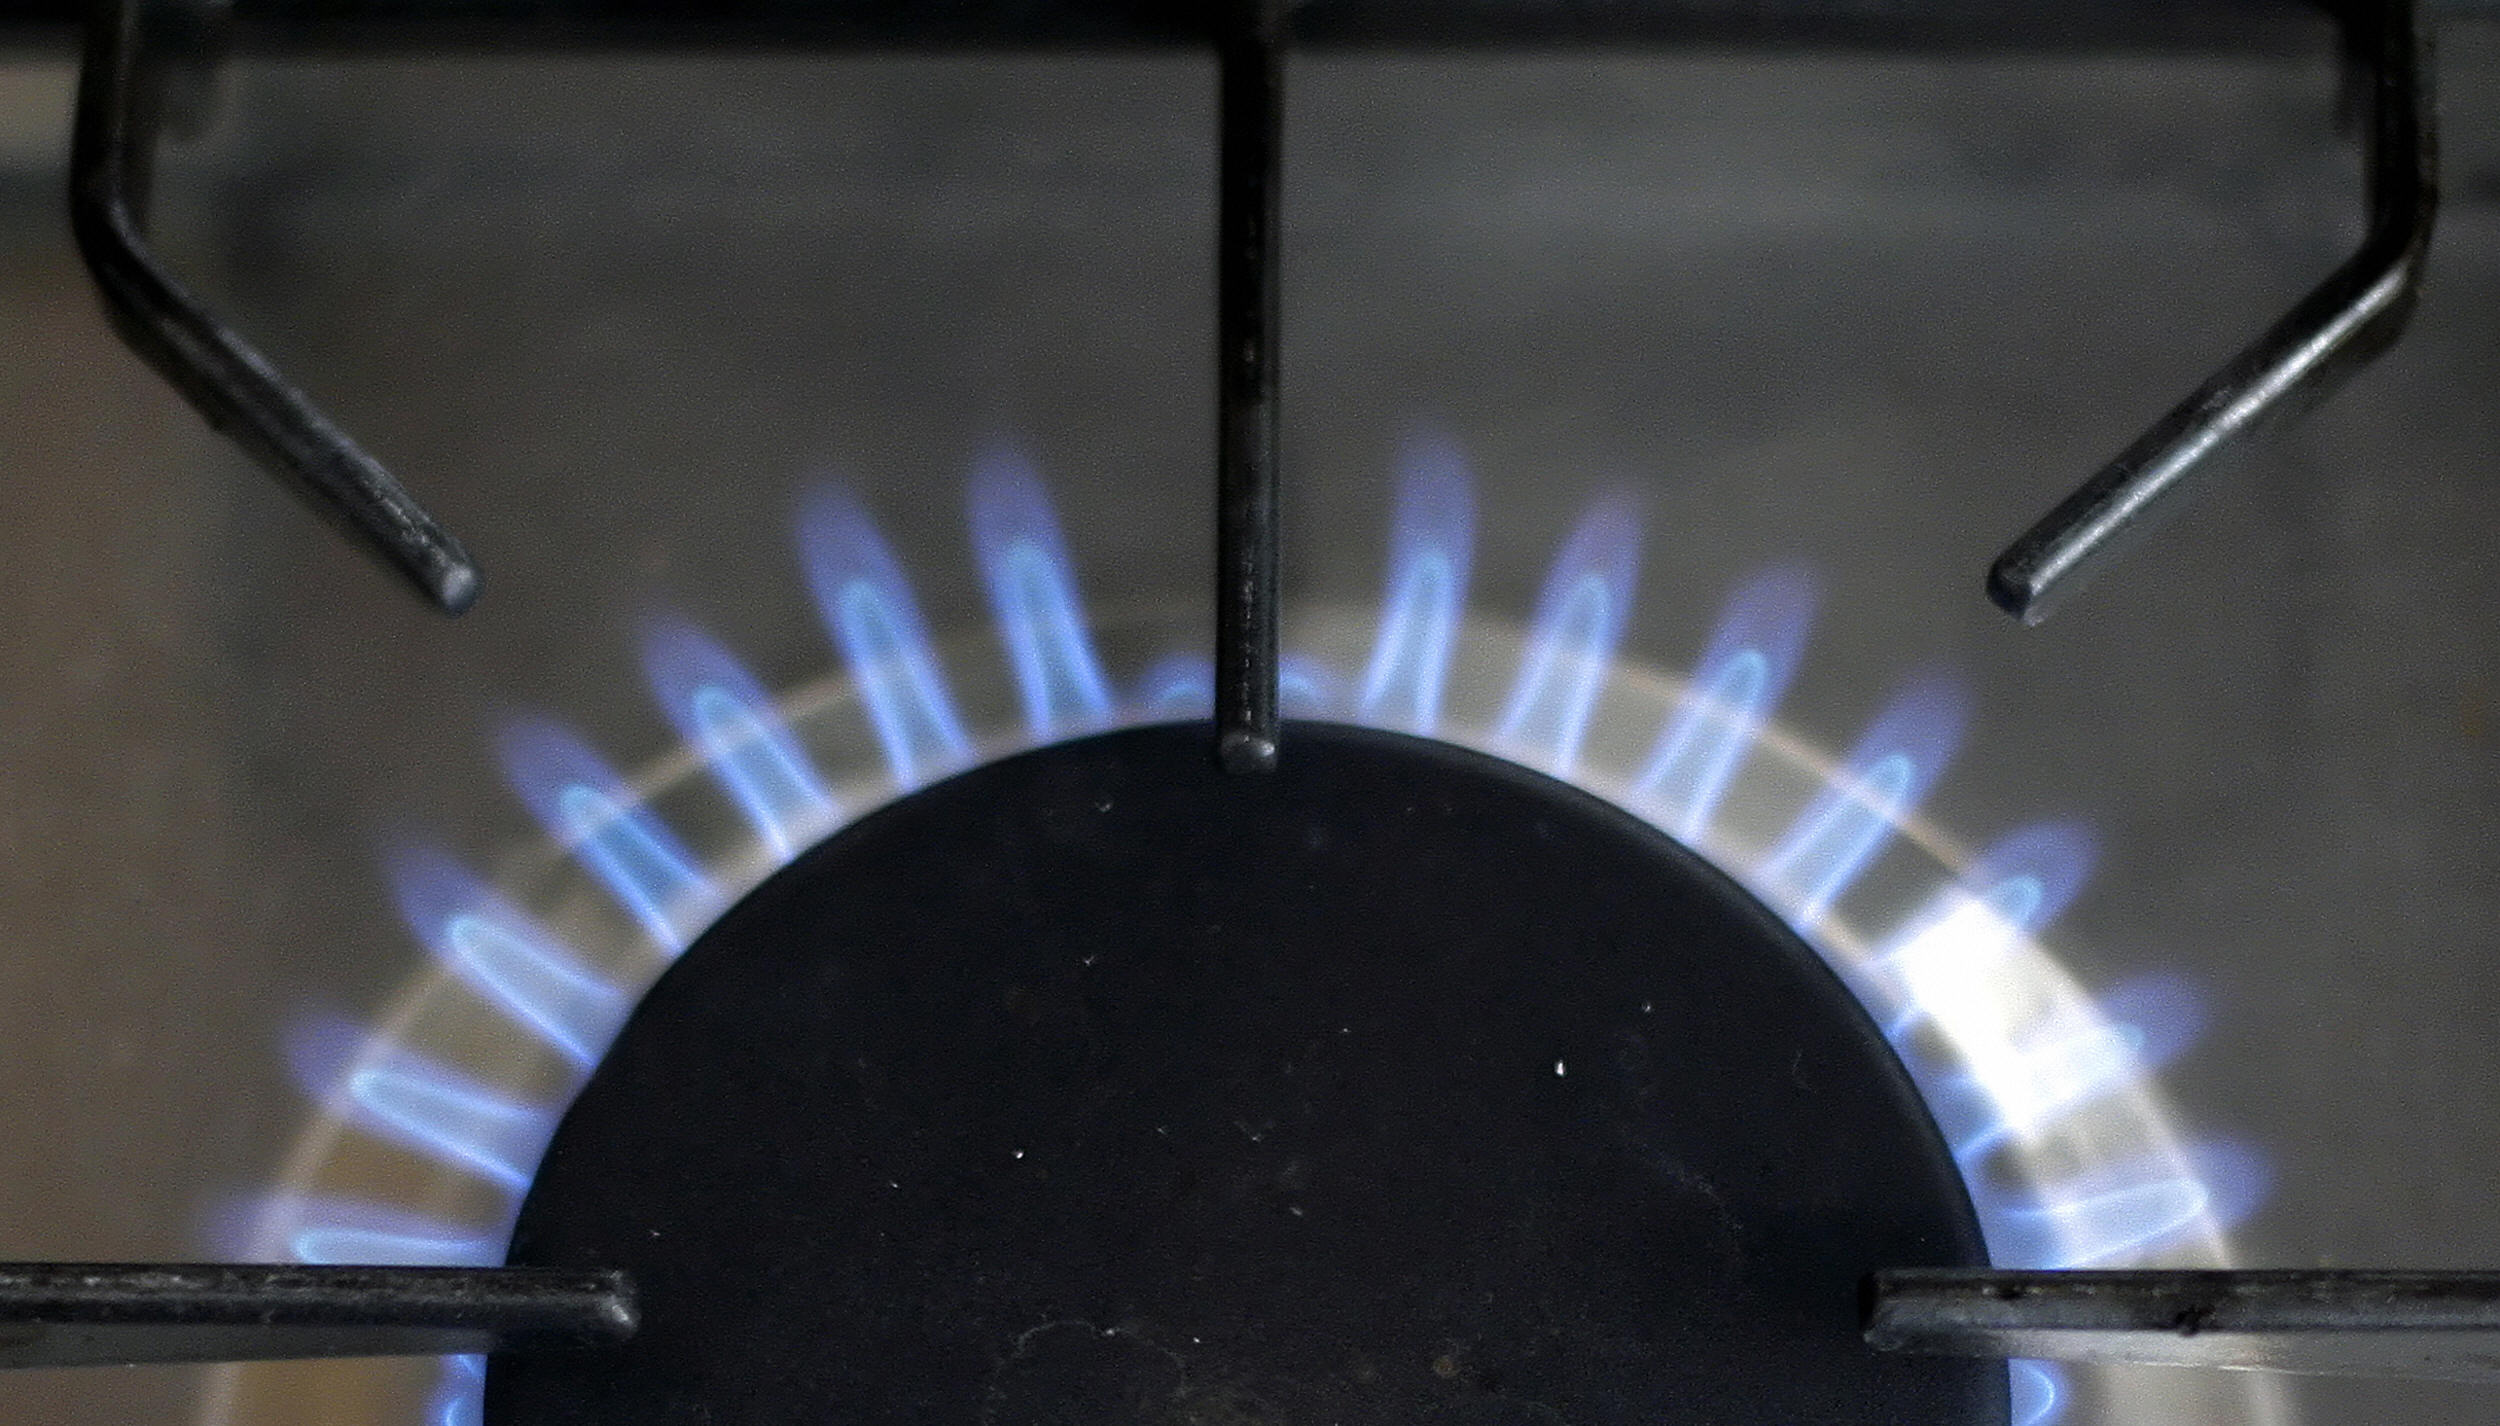 A gas burner of a stove is pictured in L